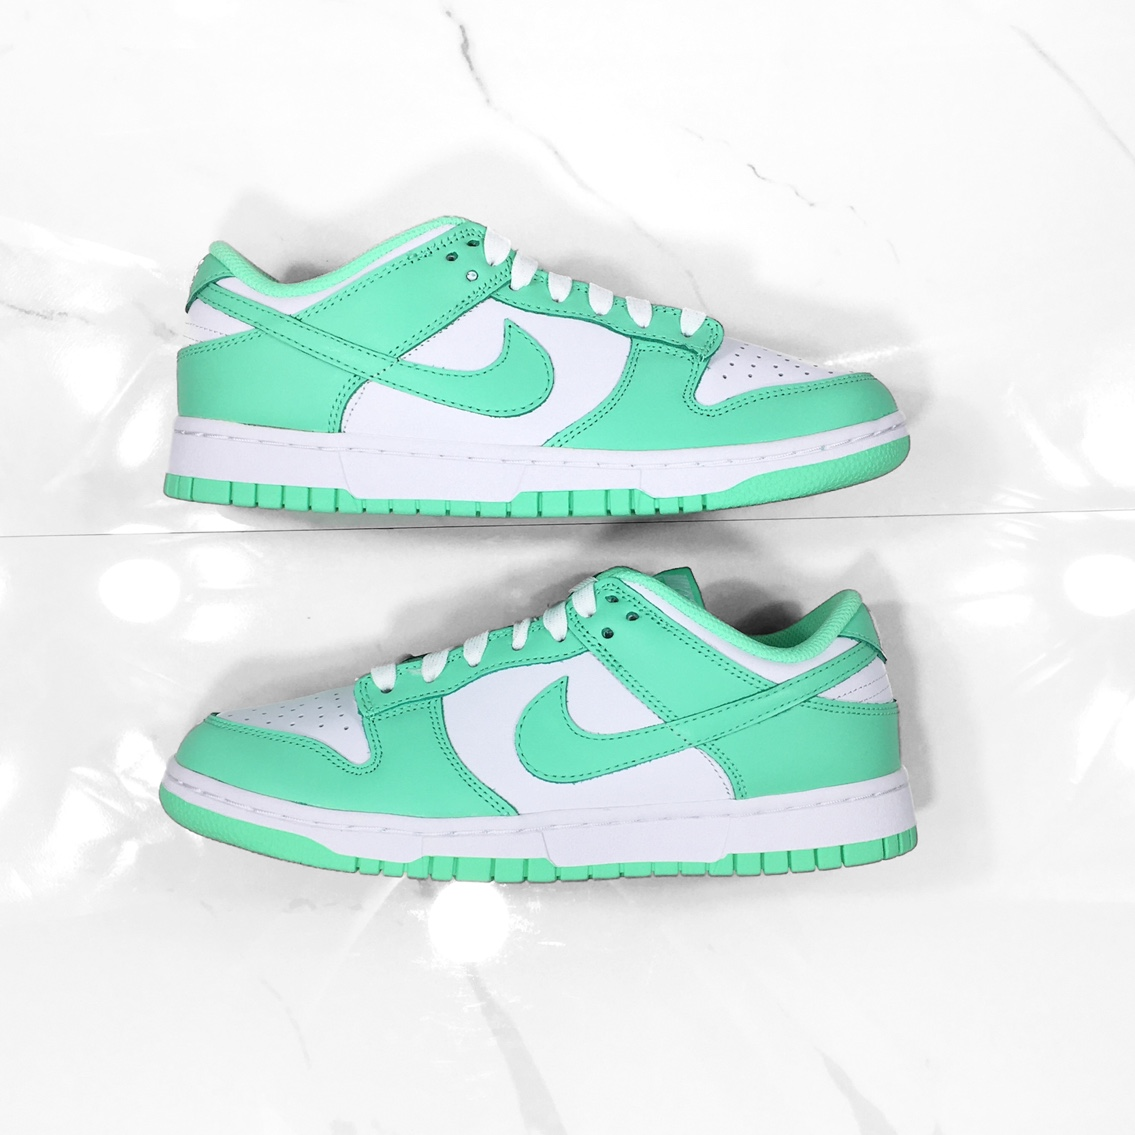 Product Image 1 - Nike Dunk Low Green Glow Size: